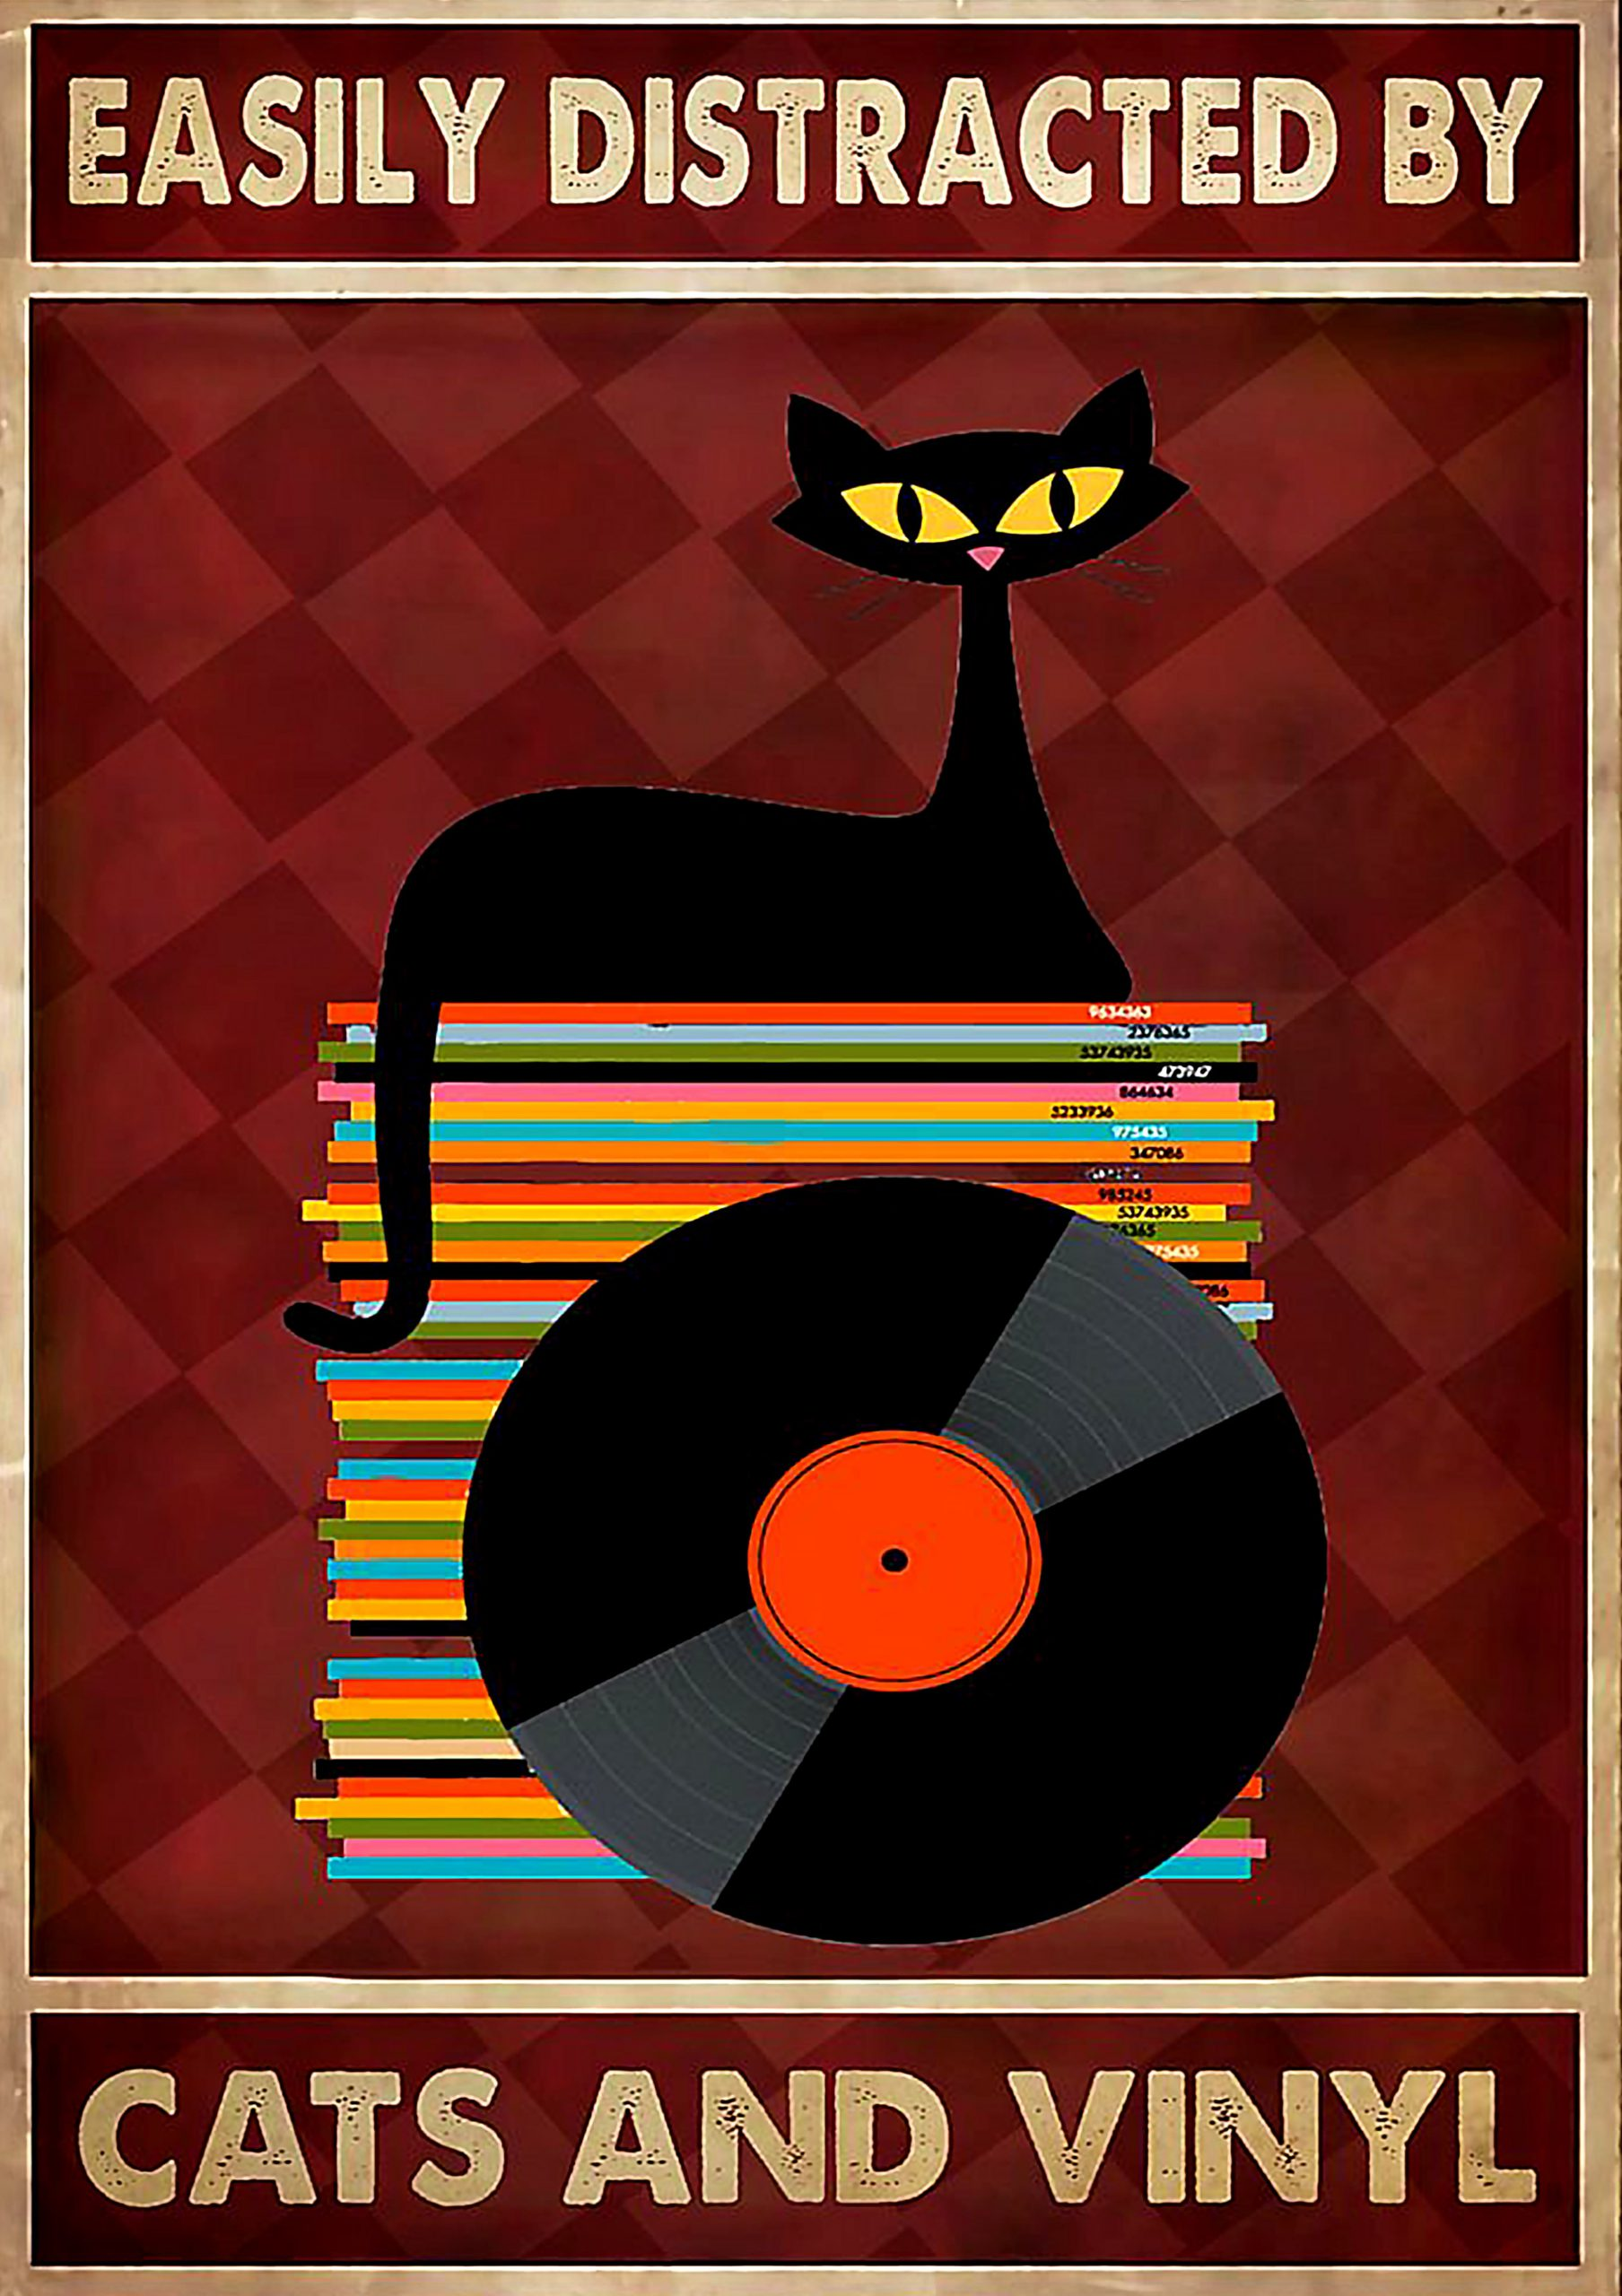 vintage easily distracted by cats and vinyl poster 1 - Copy (2)